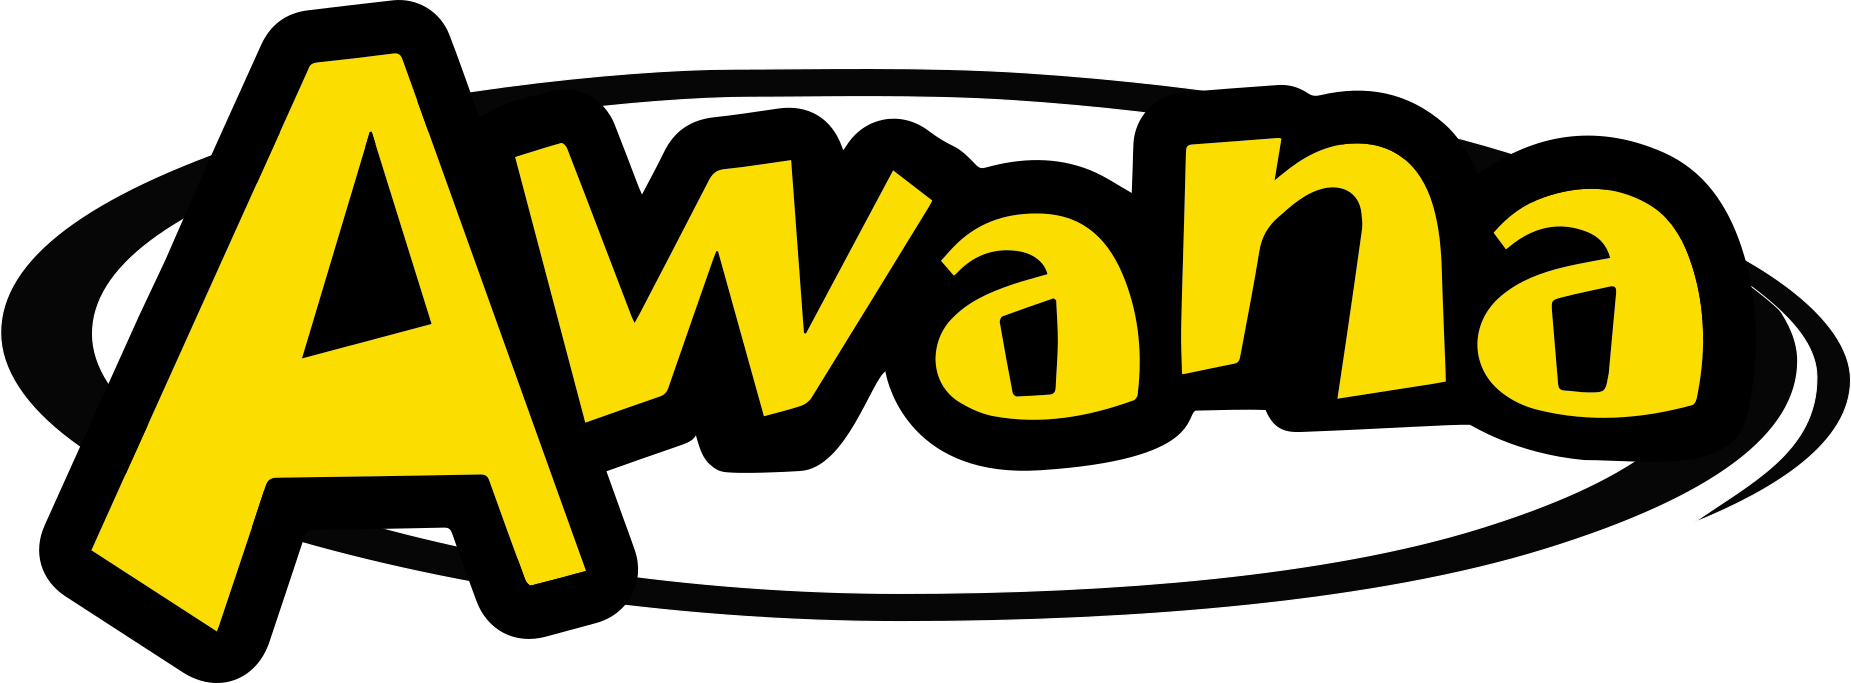 banner Free download best on. Awana clipart